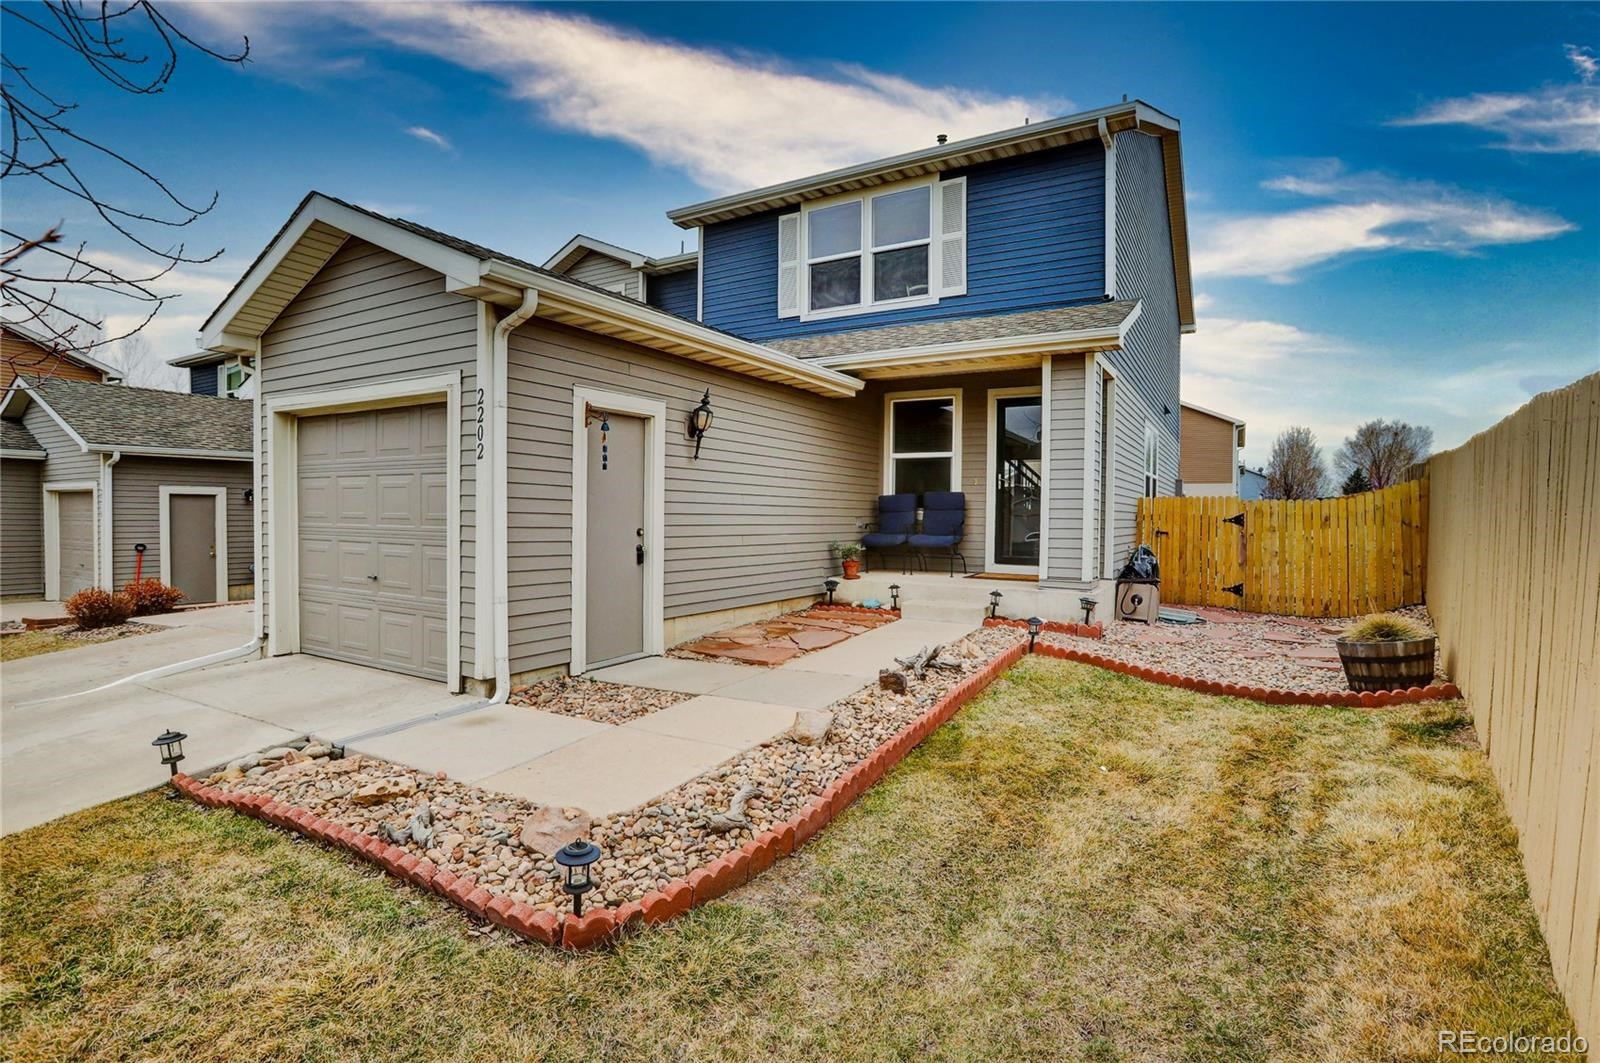 MLS# 7916174 - 2202 E 111th Drive, Northglenn, CO 80233